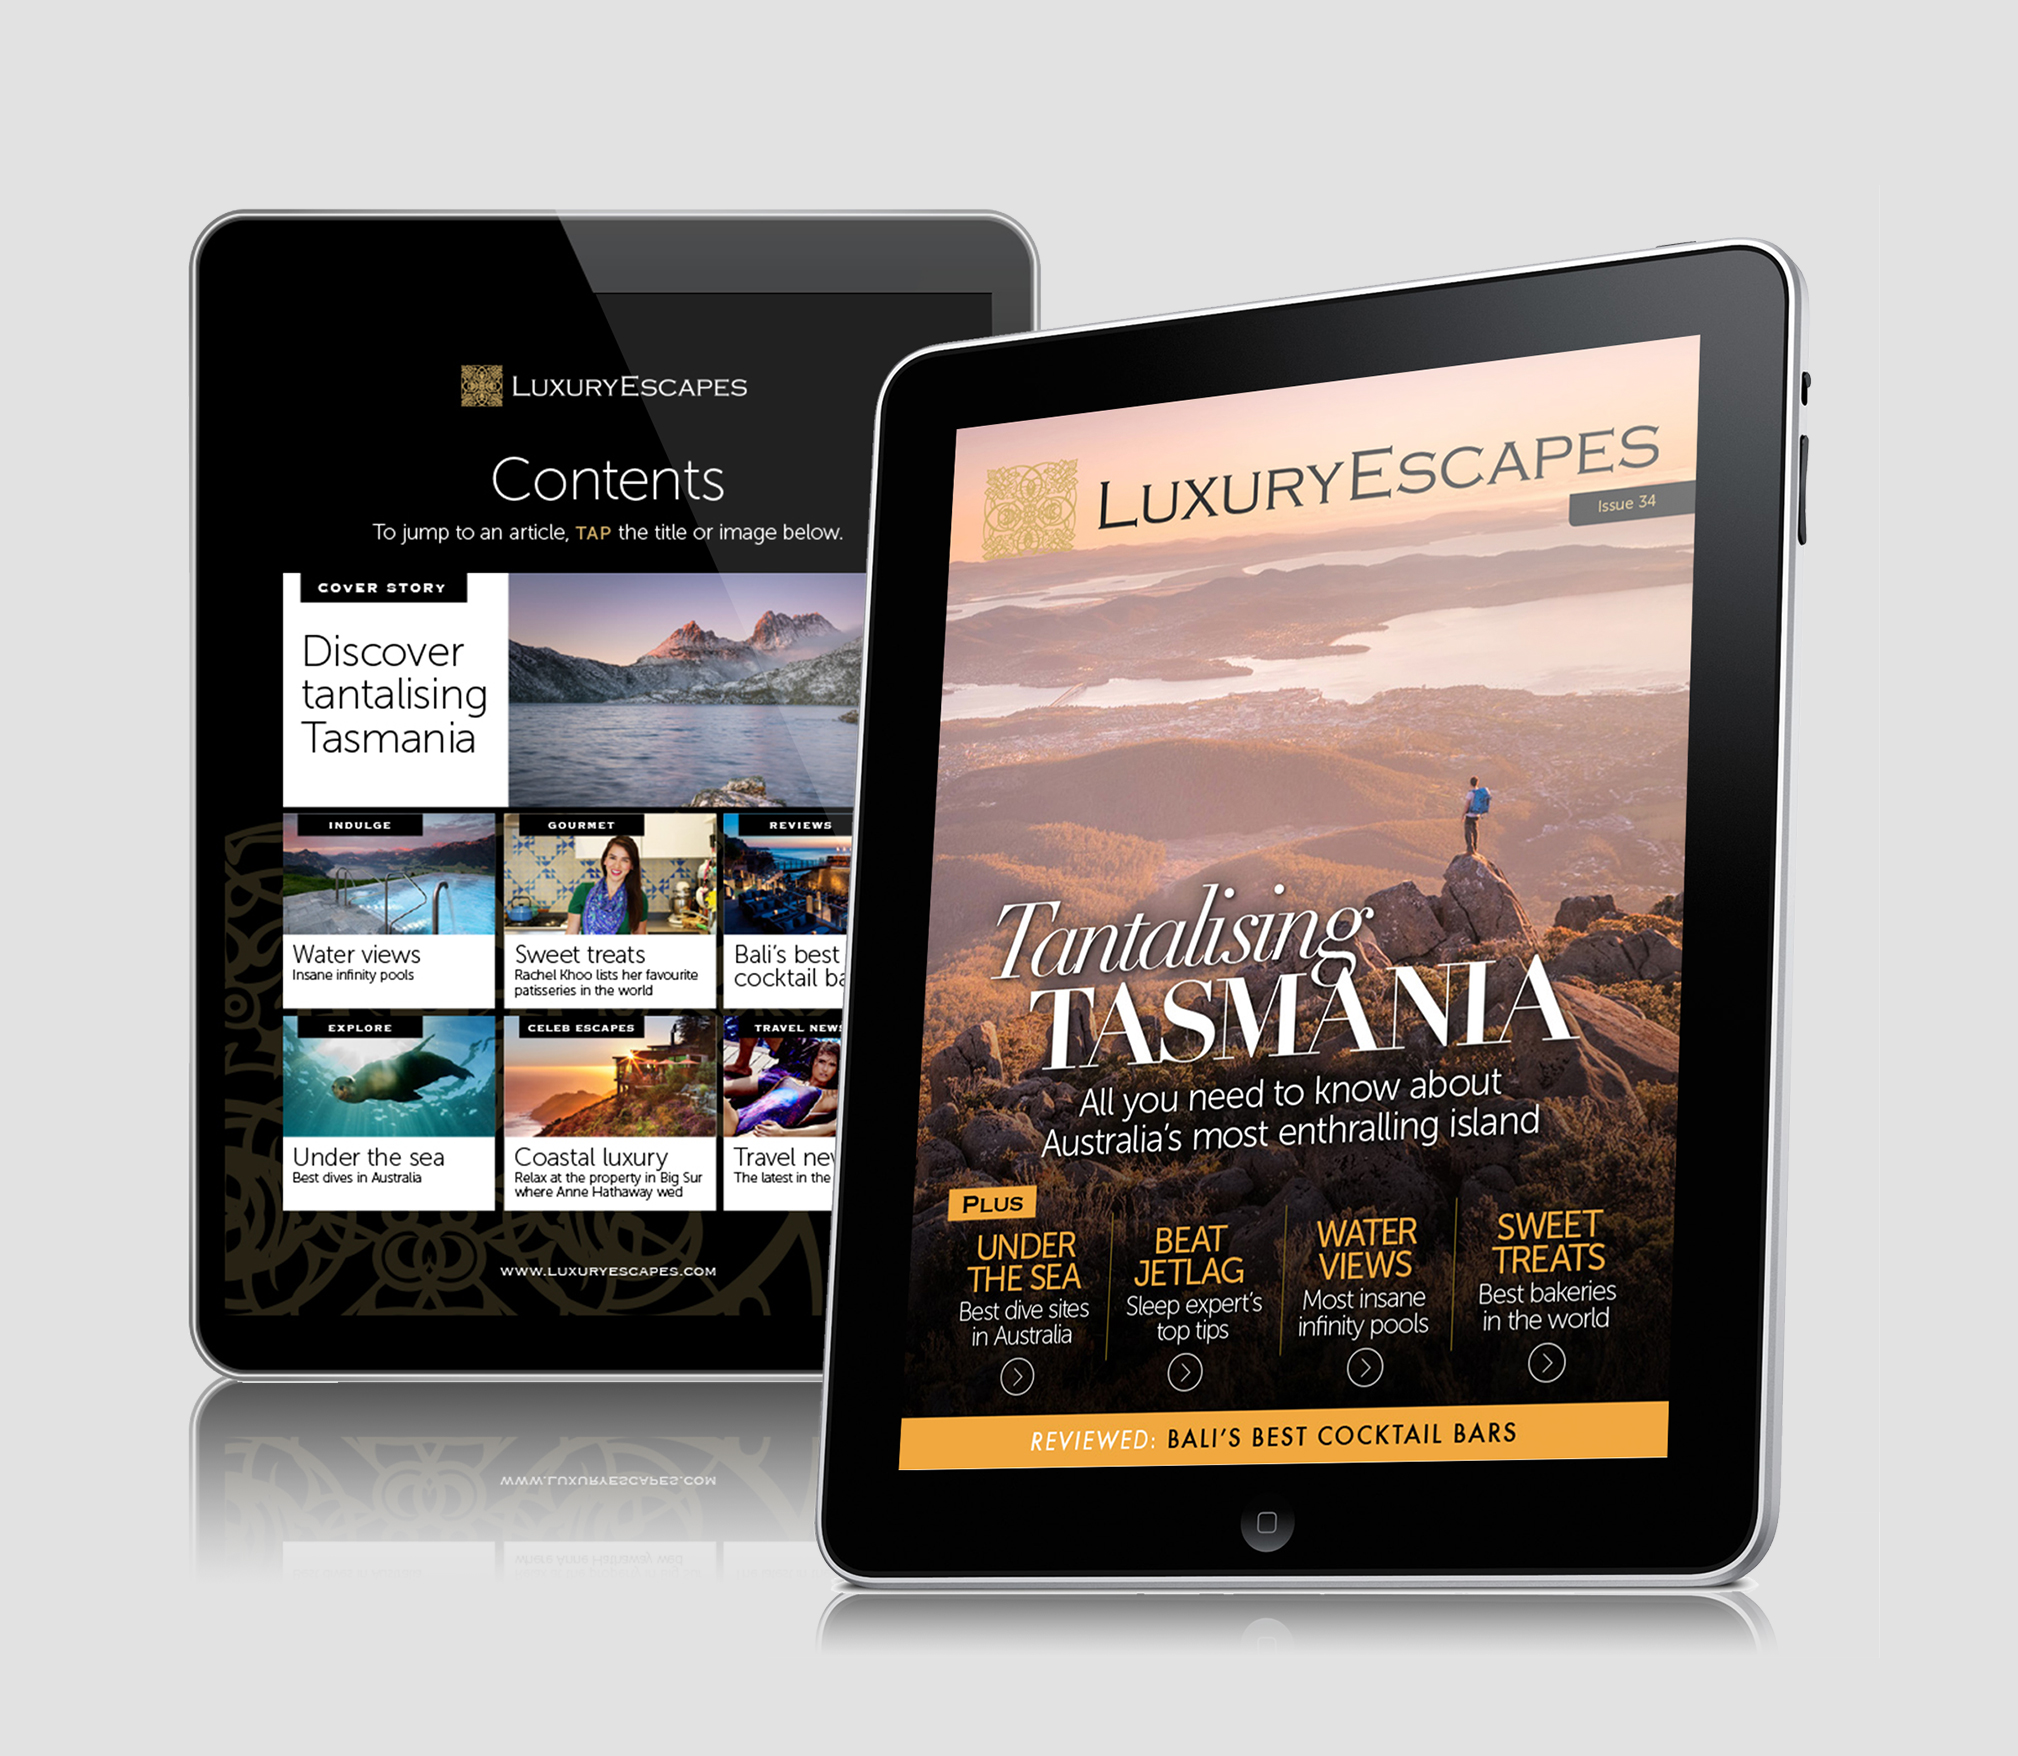 Luxury Escapes magazine